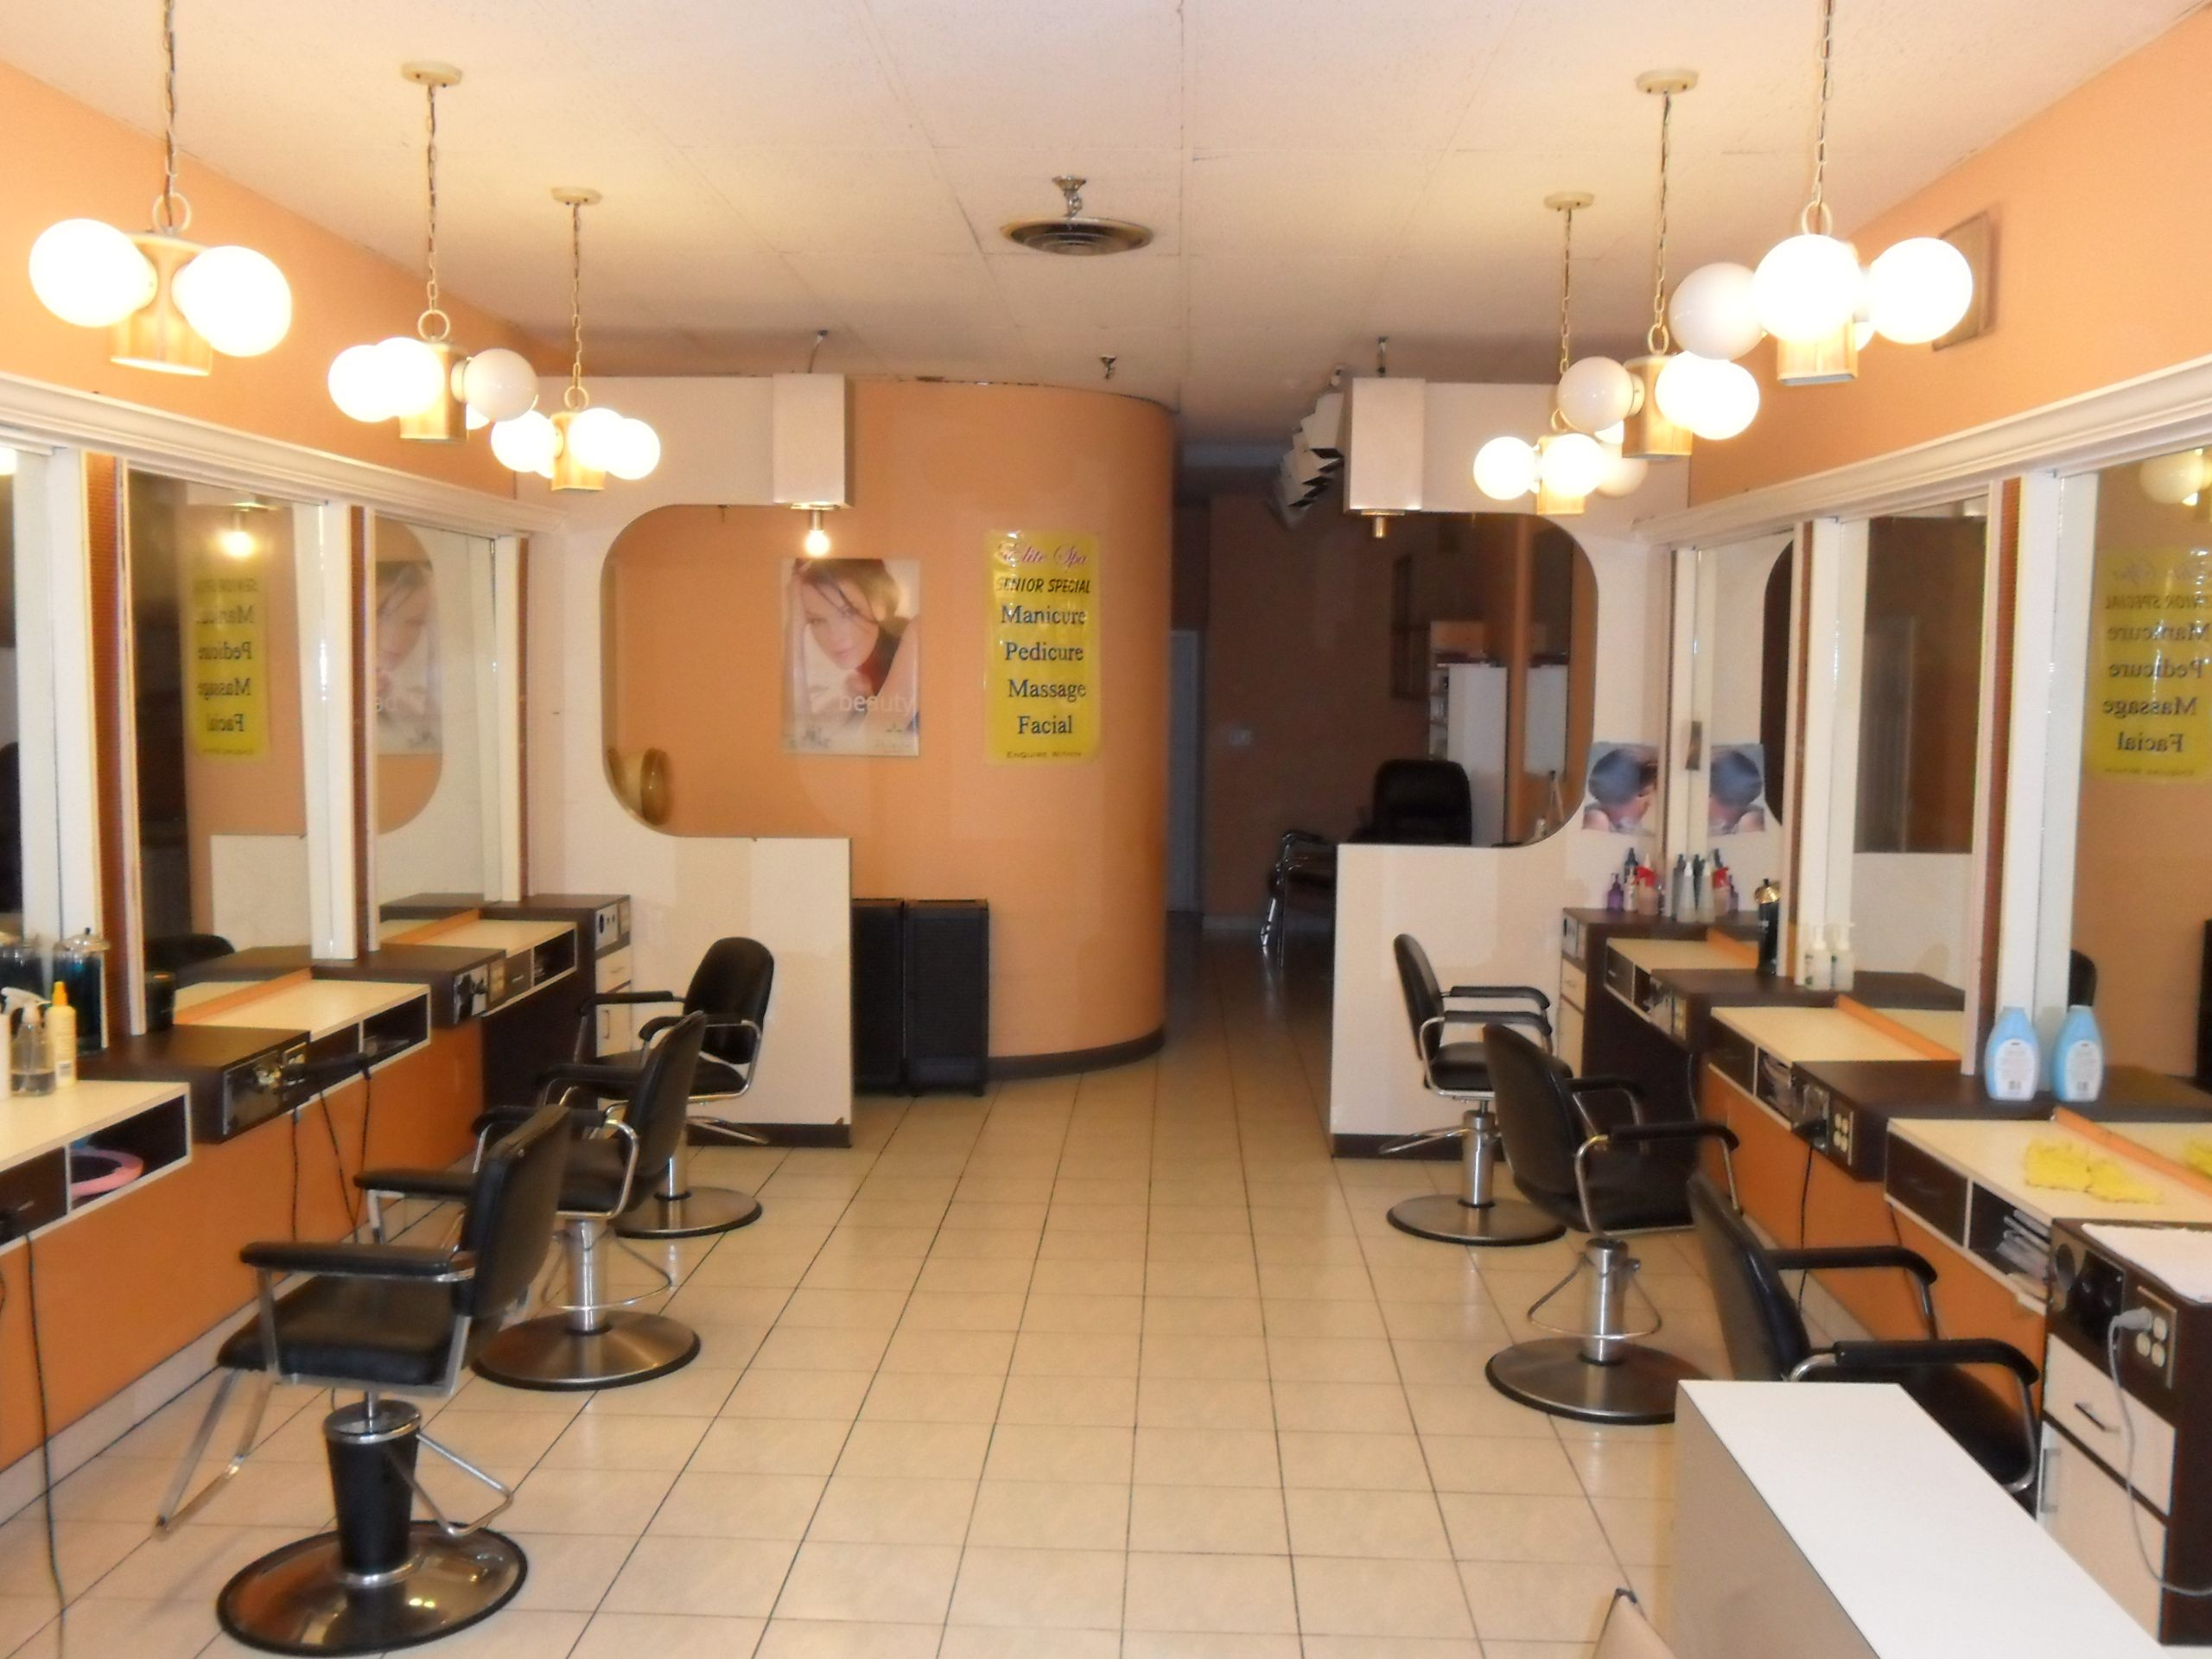 beauty salon design plans beauty salons design ideas - Beauty Salon Design Ideas